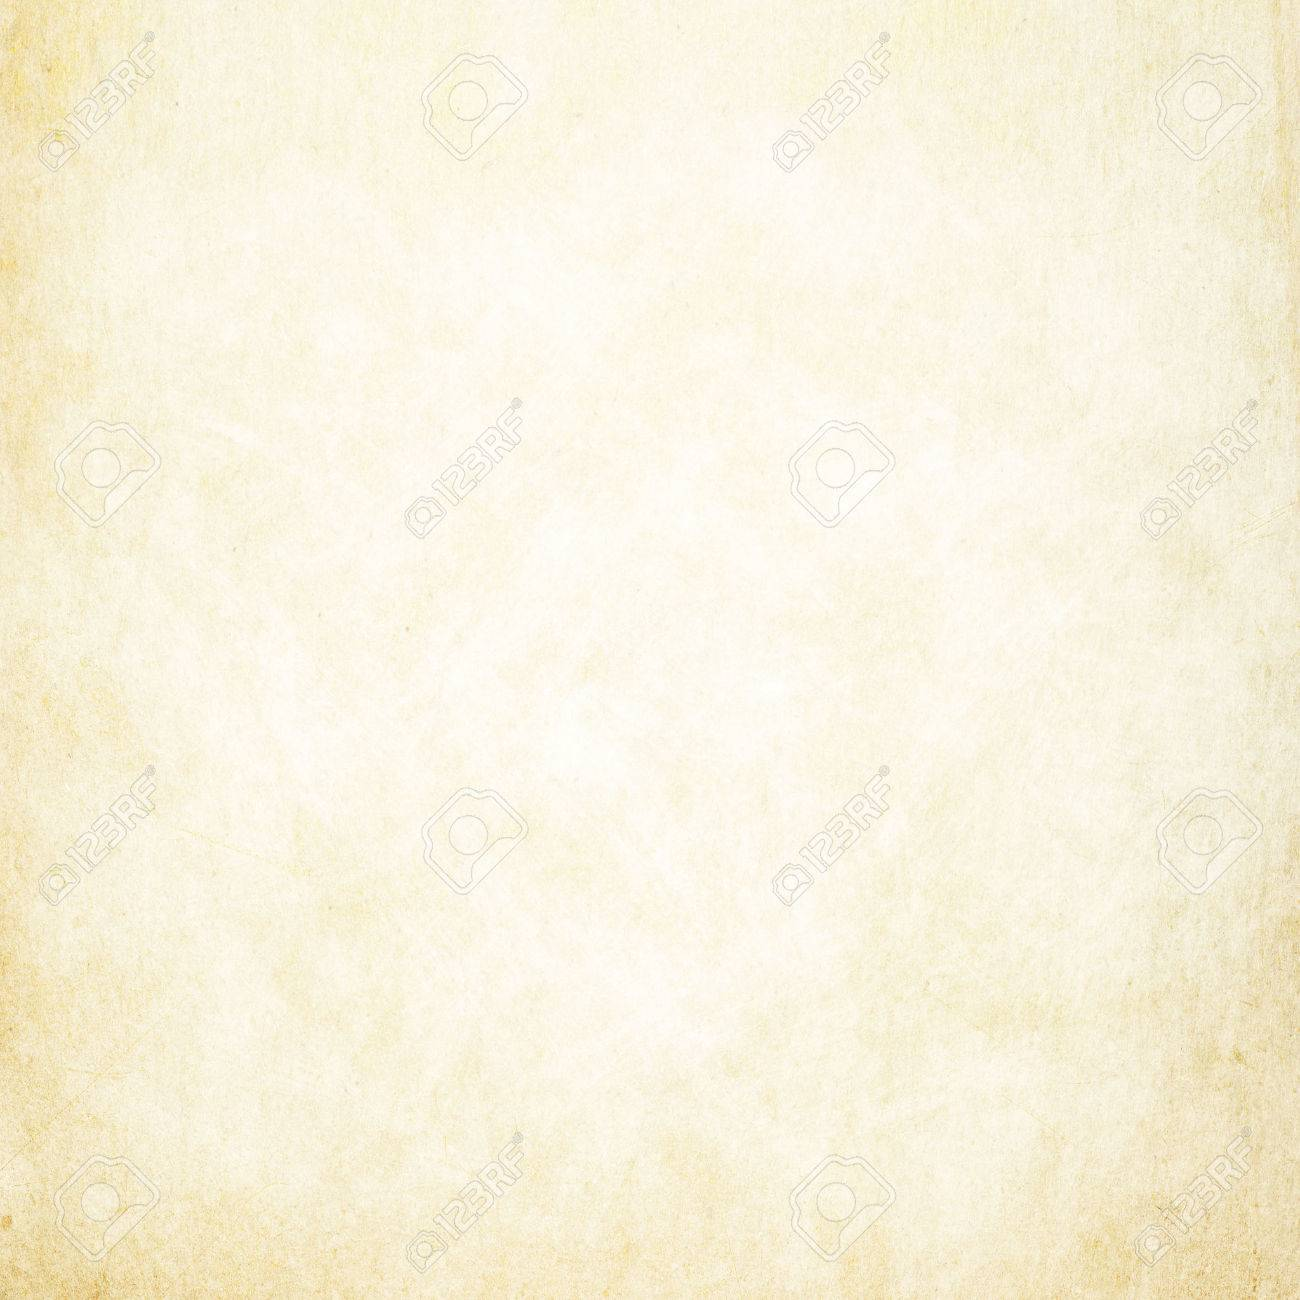 retro background with texture of old paper - 31830661